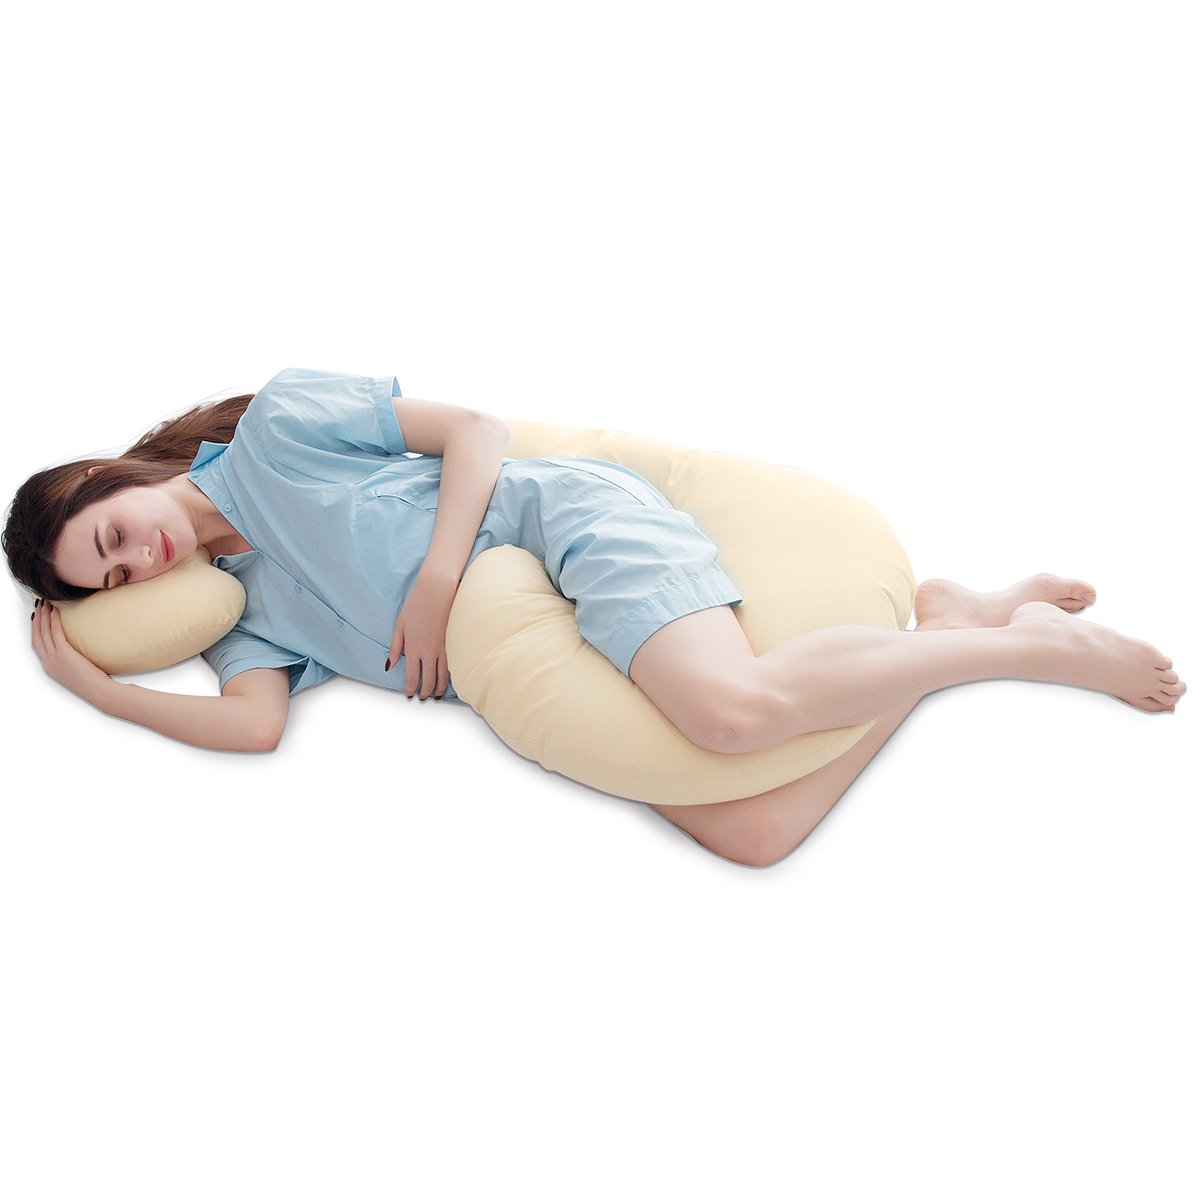 "PUREDOWN C Shaped Maternity/Pregnancy Contoured Body Pillow with Zippered Cover, 27"" x 56"", Beige"